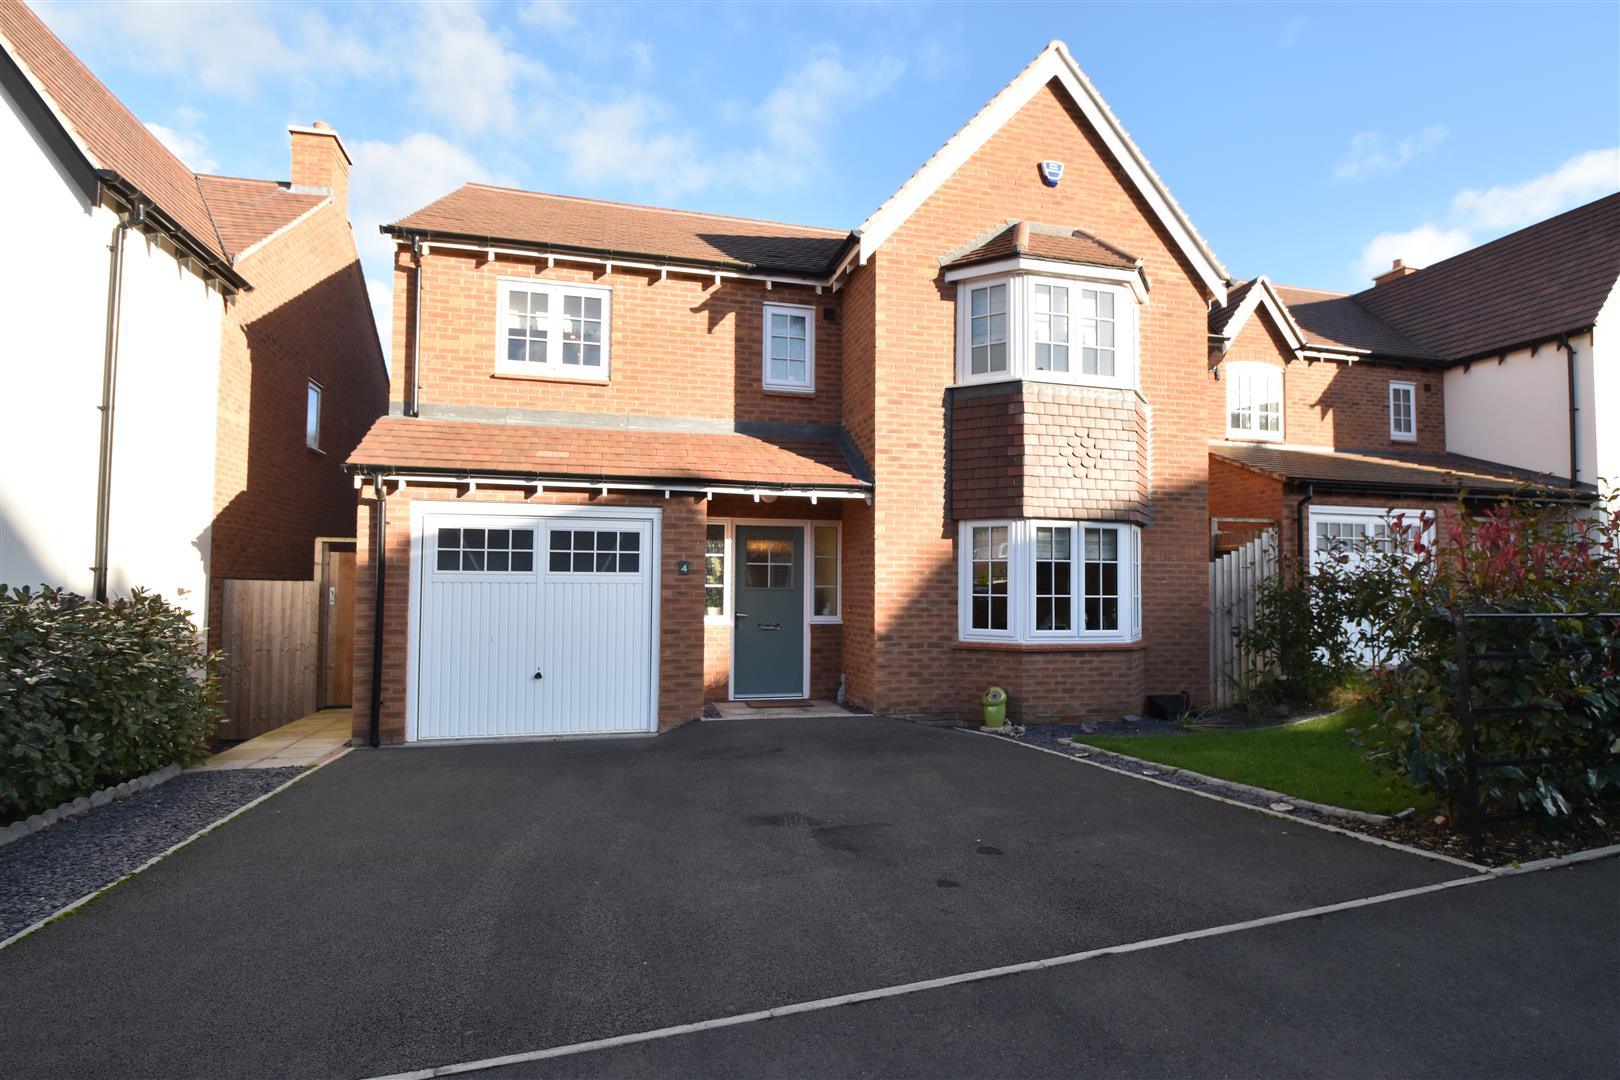 4 Bedrooms Detached House for sale in Woodedge Drive, Droitwich